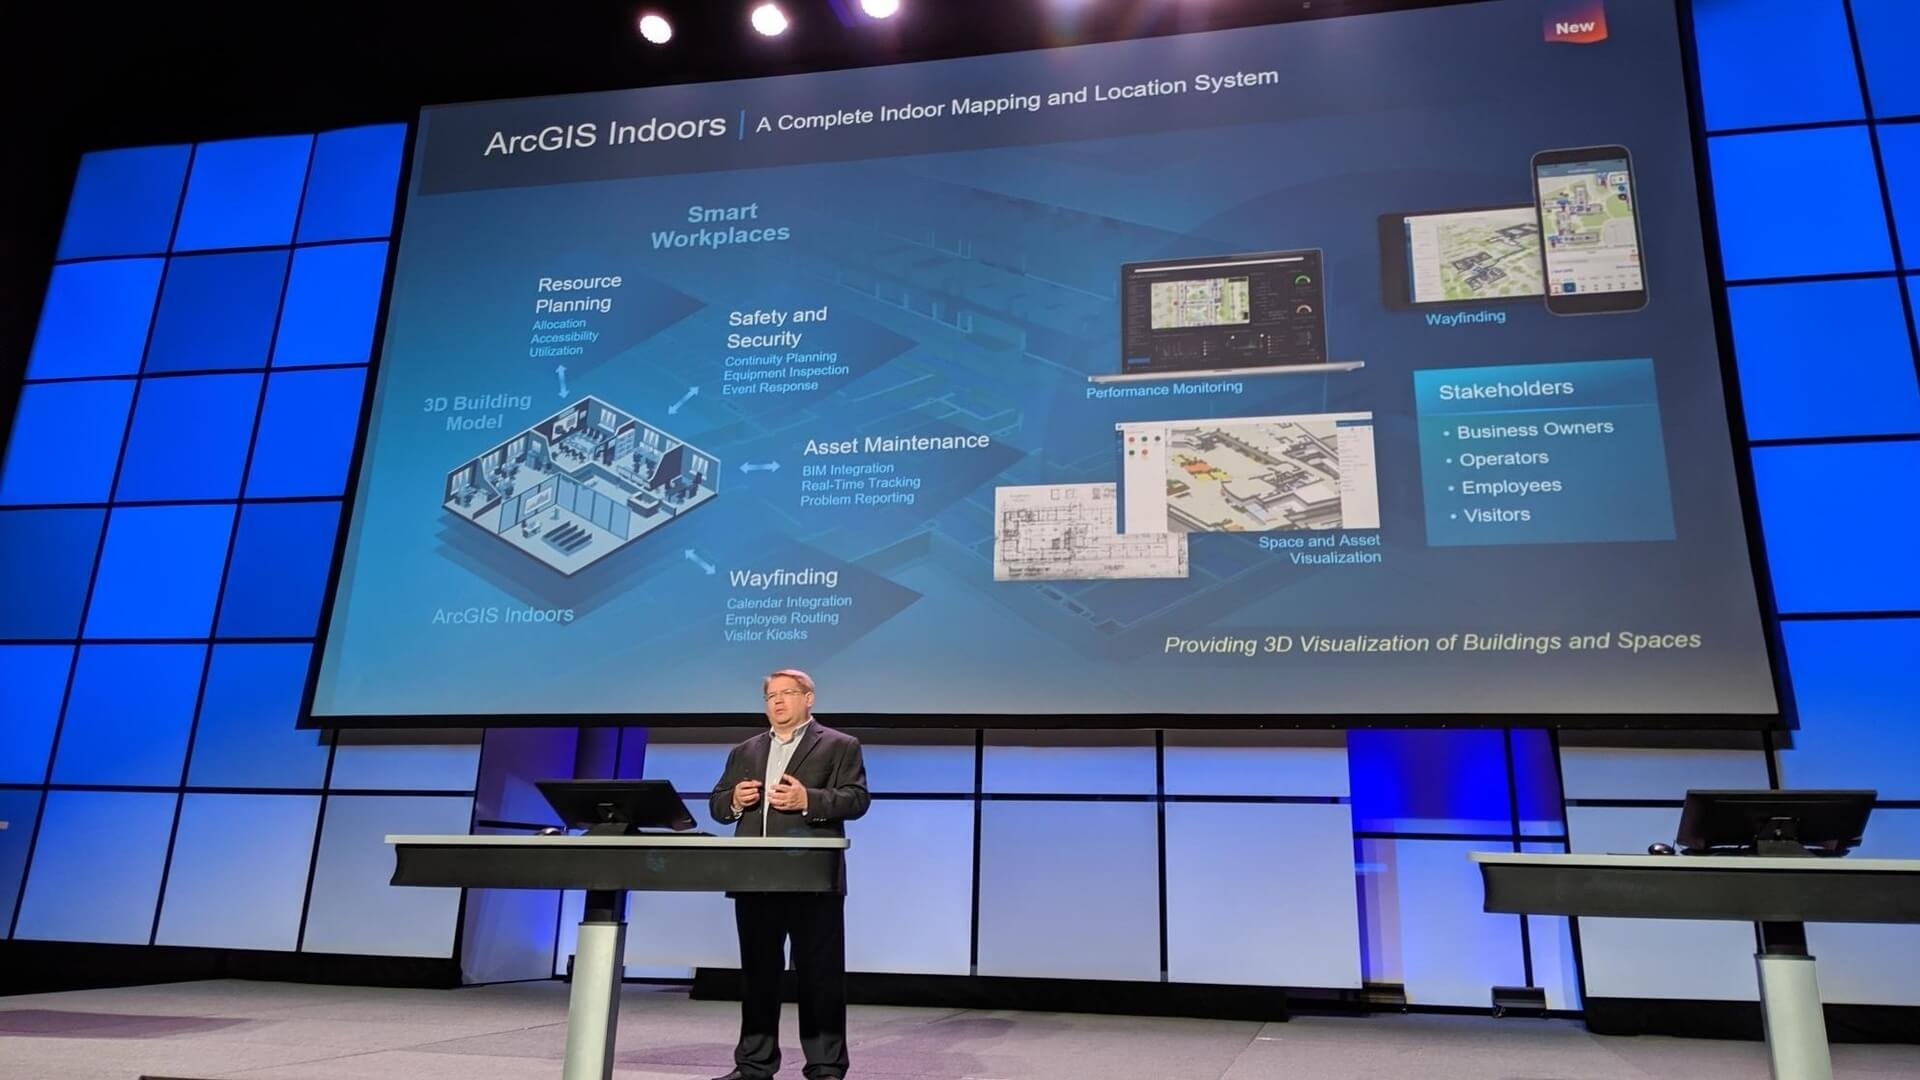 Esri Director of Solutions, Damian Spangrud, highlights ArcGIS Indoors as tool to help create Smart Workplaces.